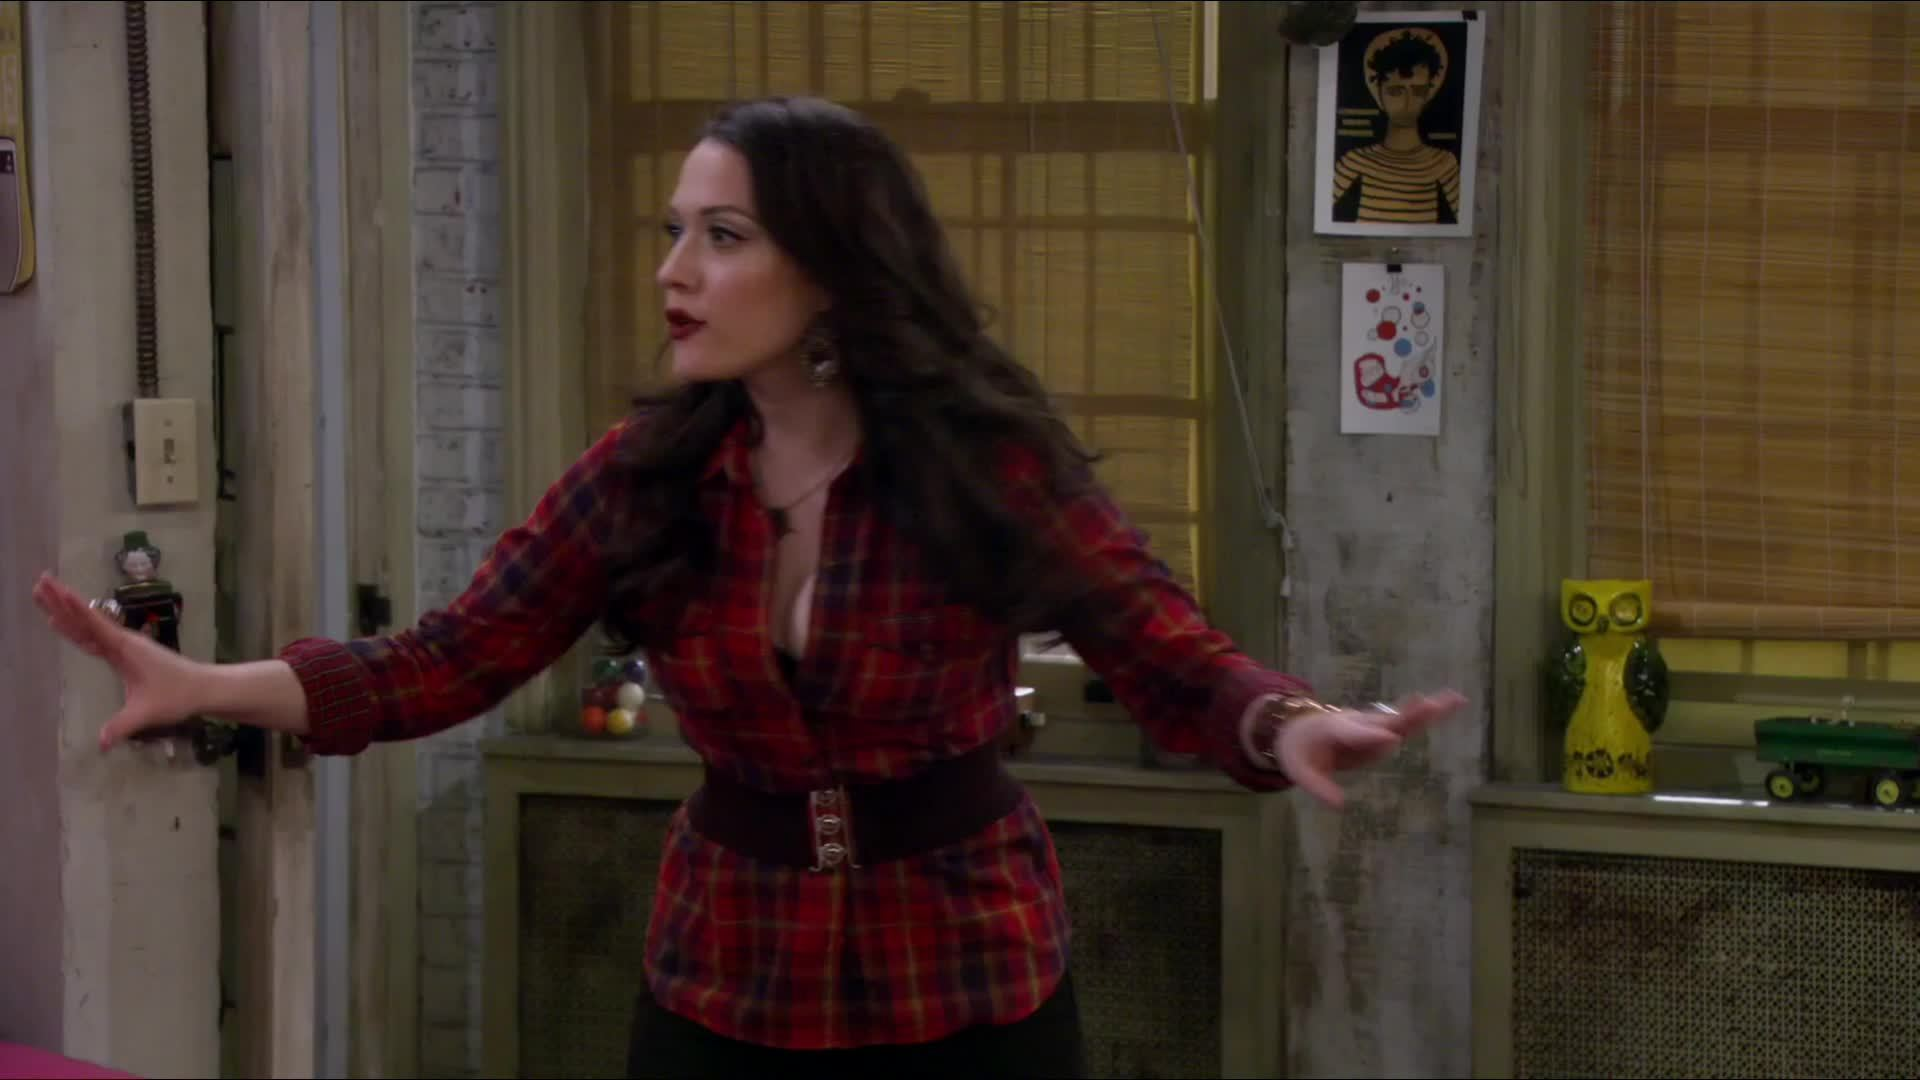 katdennings, Kat Dennings takes the plot into her own hands (reddit) GIFs